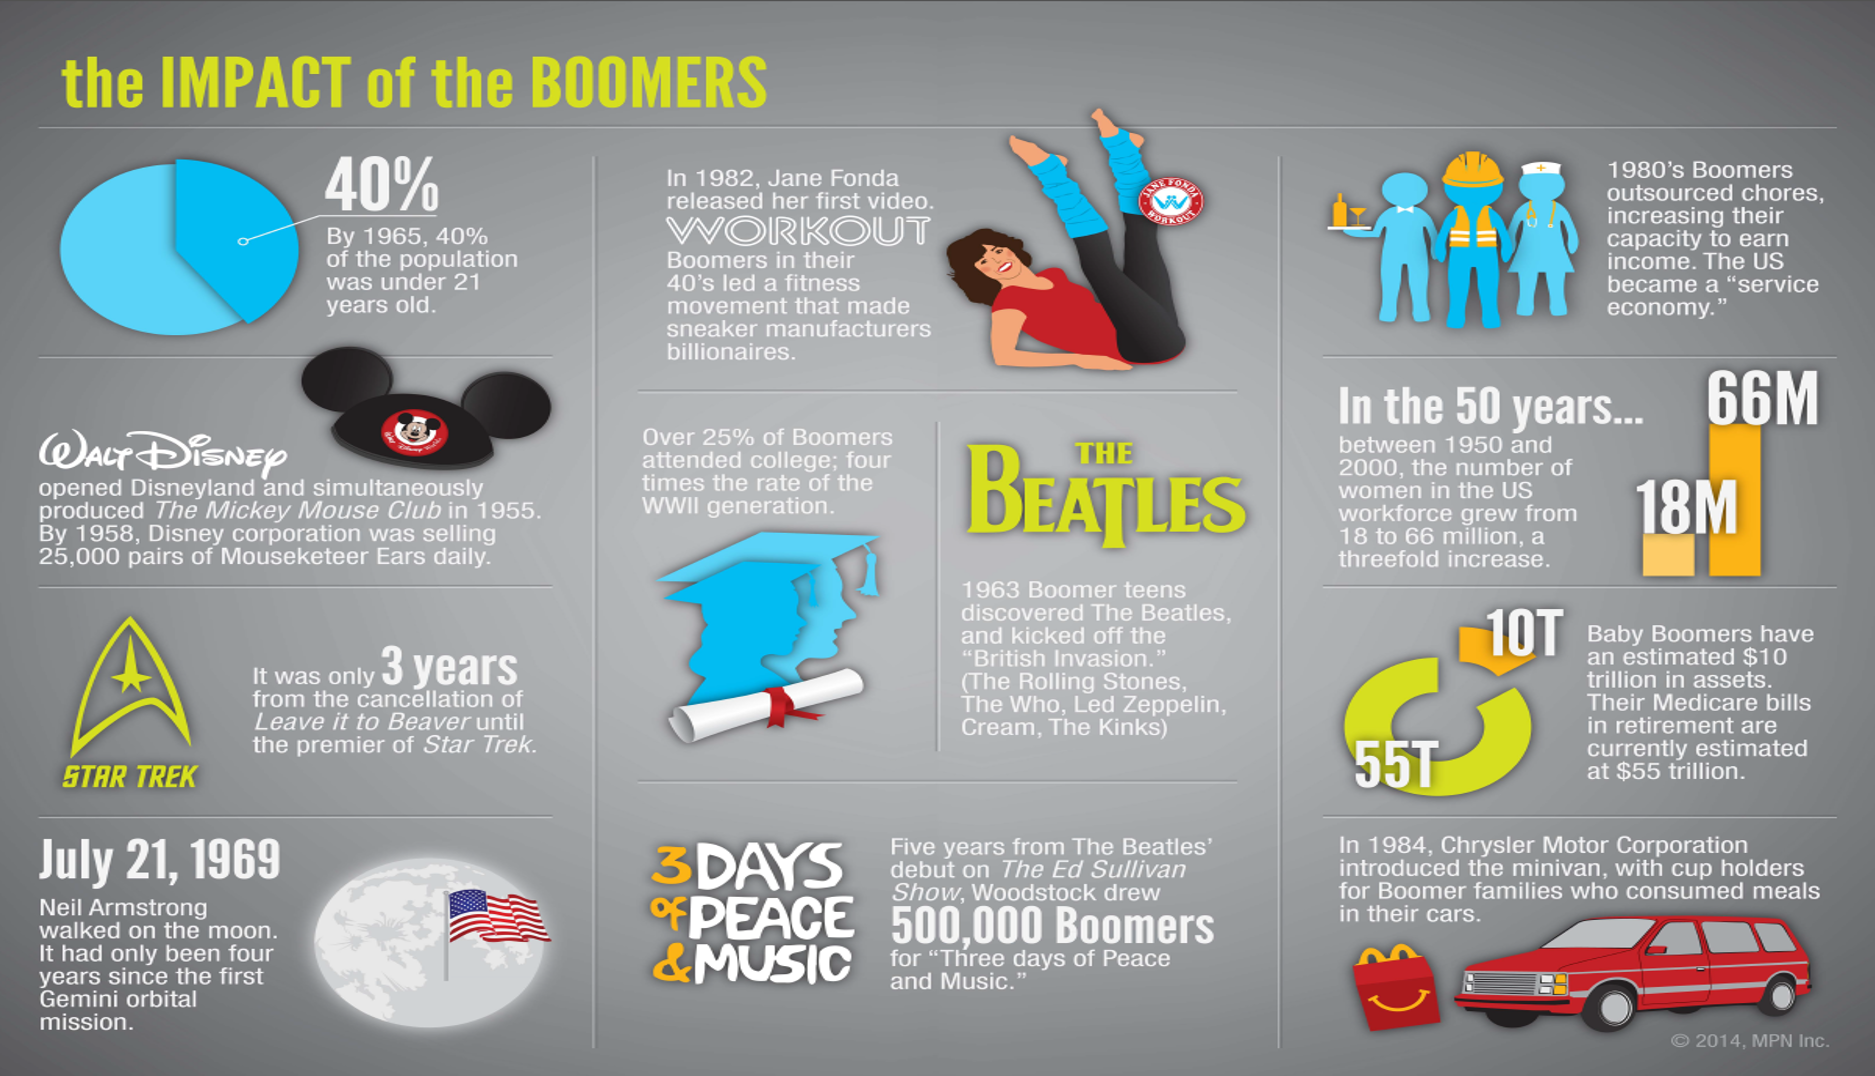 Impact of the Boomers Infographic